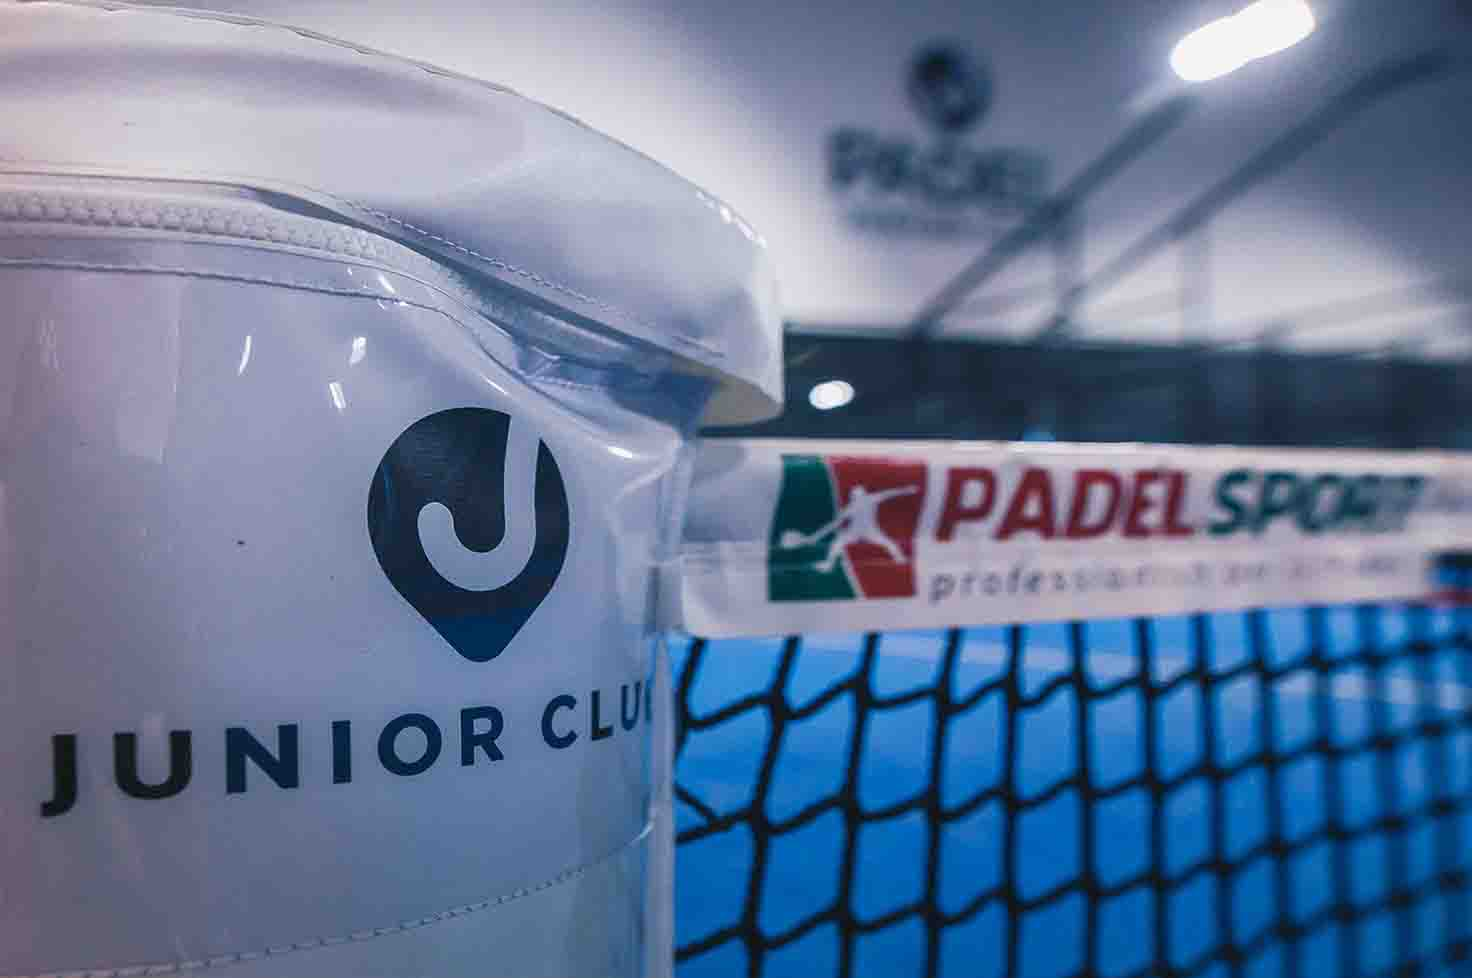 Padel Tennis al Junior Club Rastignano!